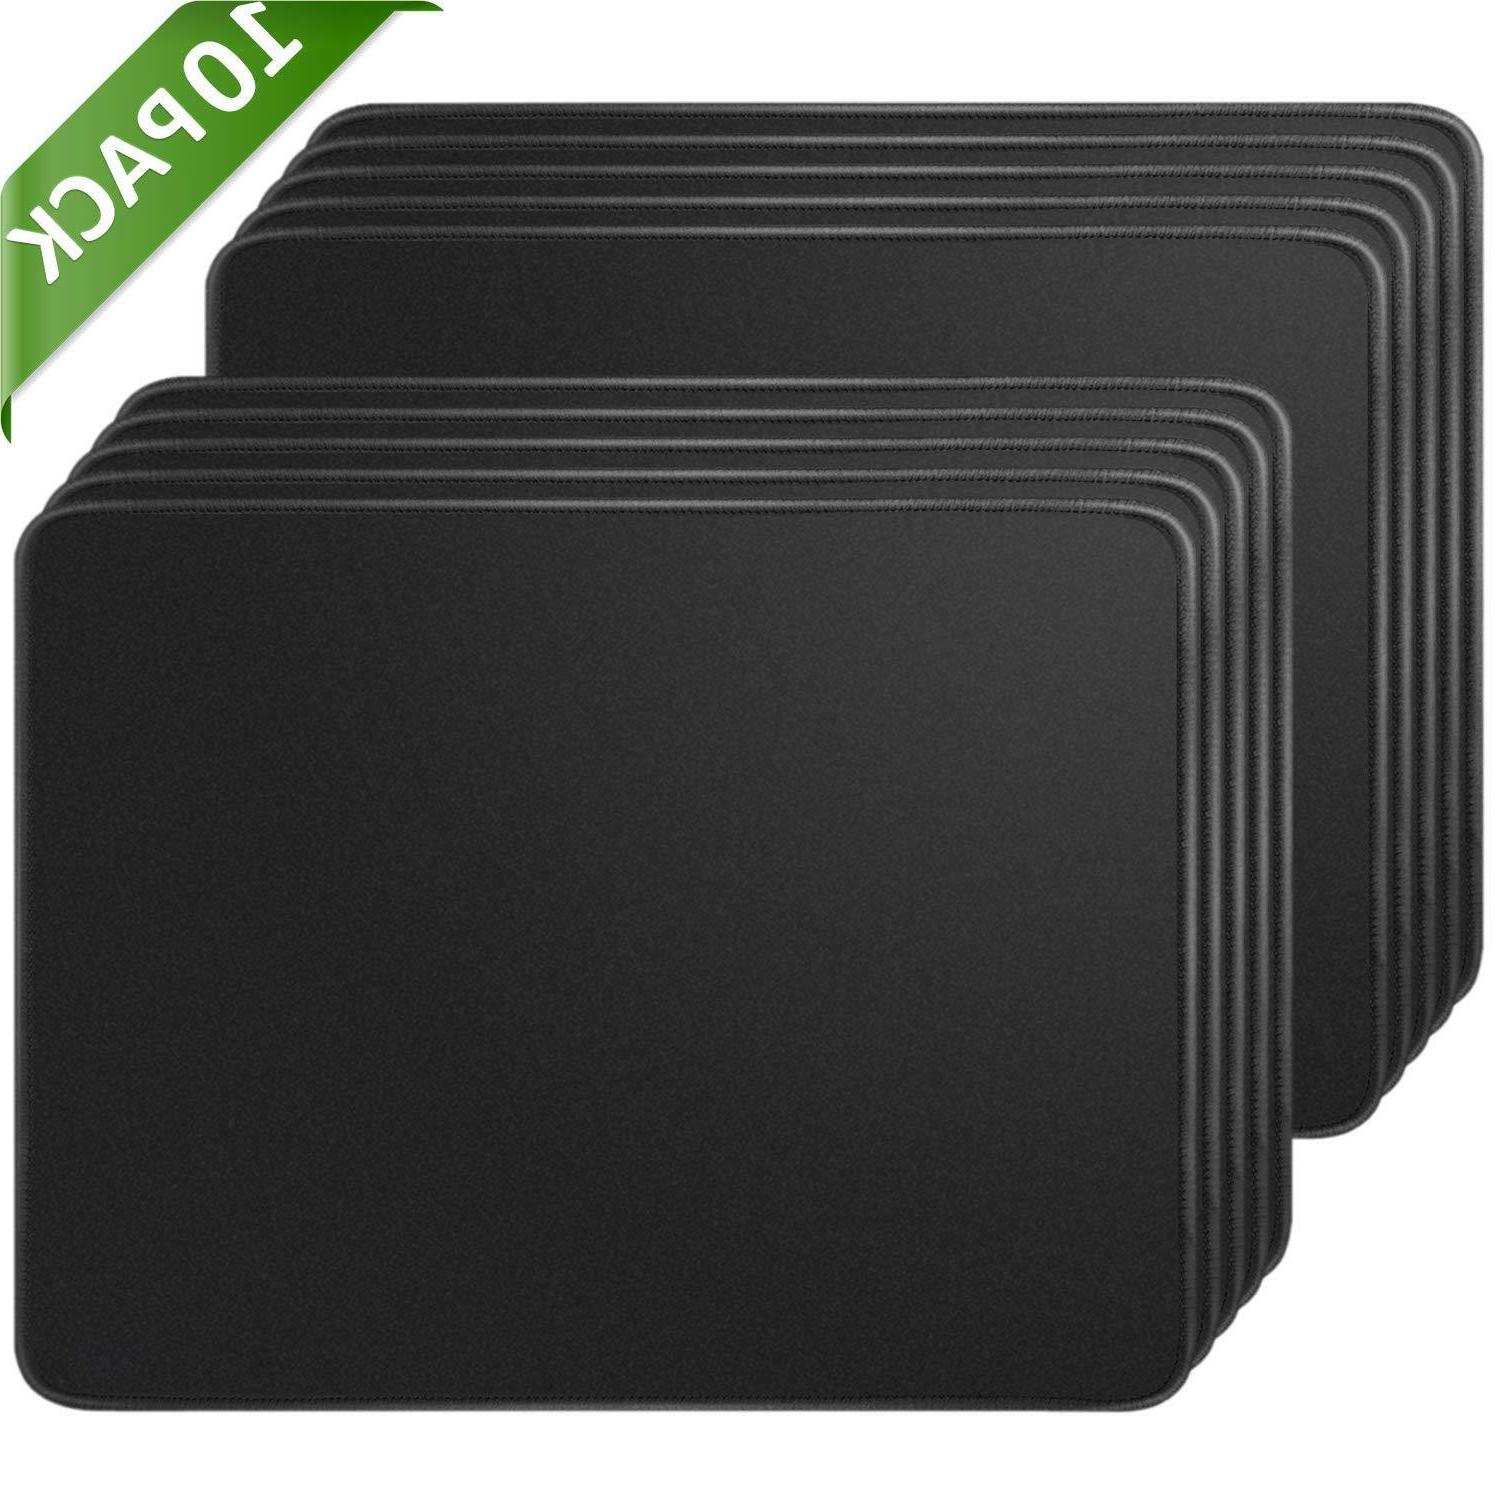 mouse pads 10 pack with non slip